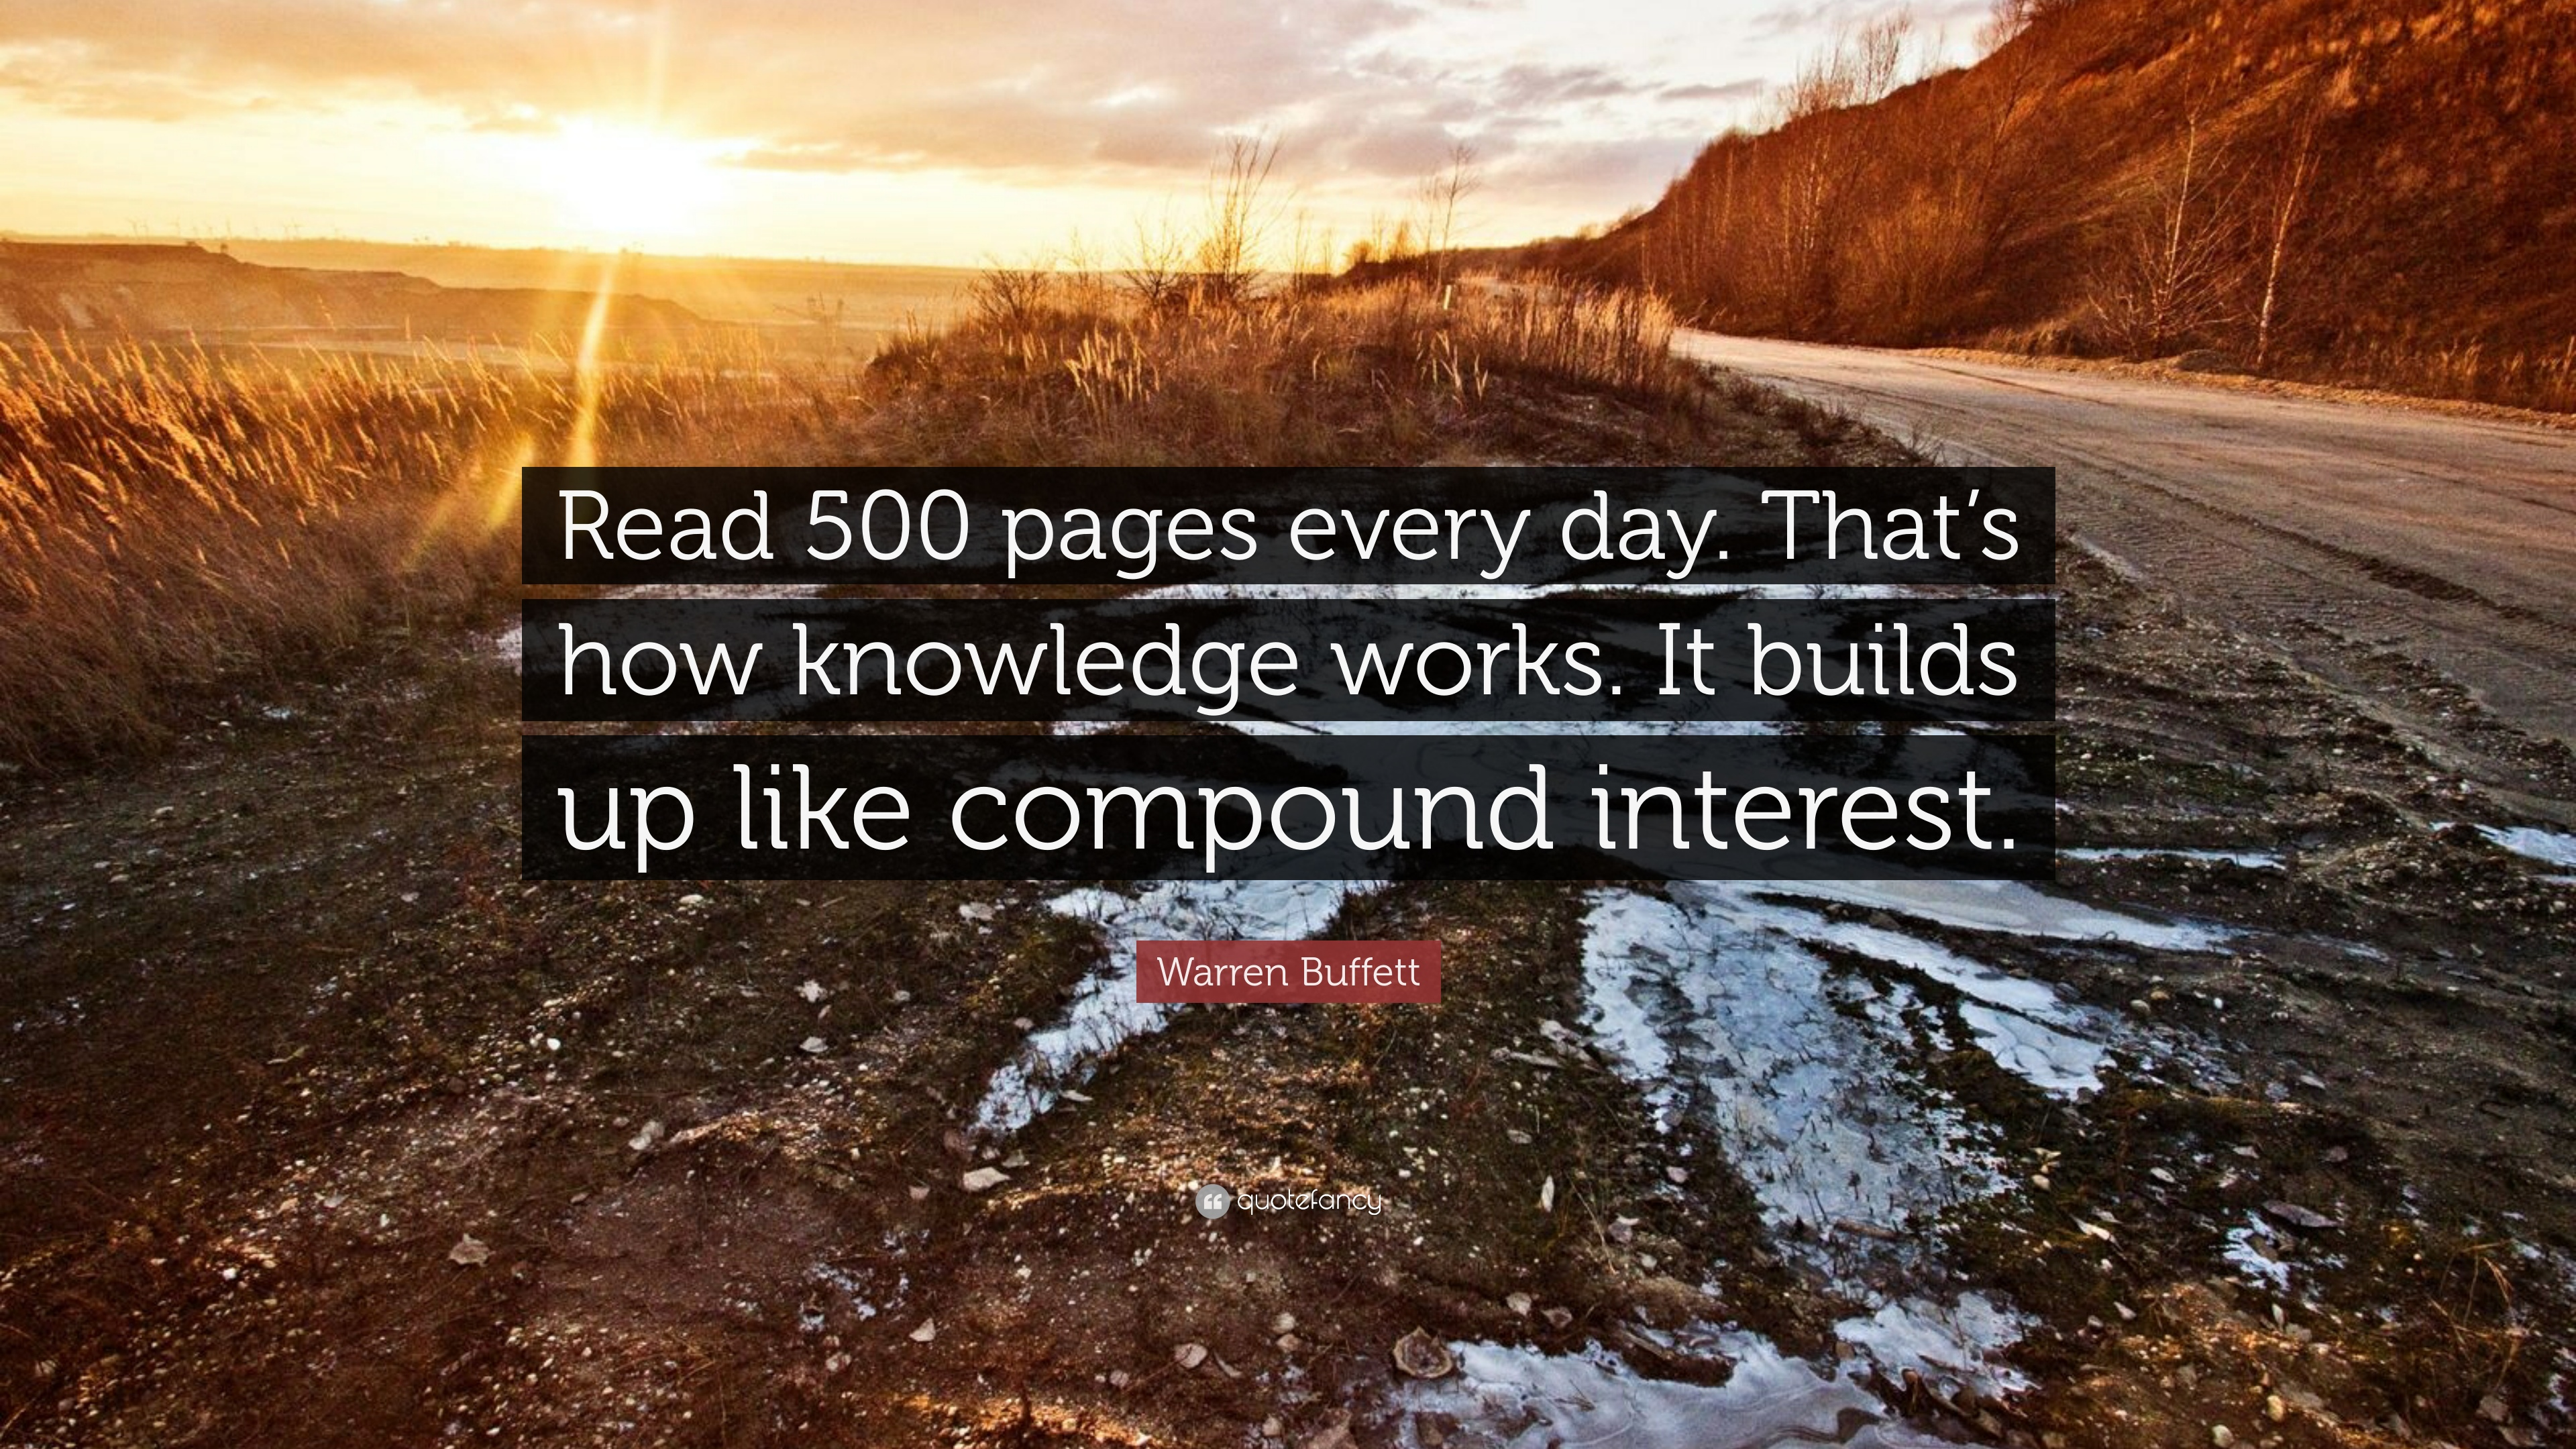 Warren Buffett Quote Read 500 Pages Every Day That S How Knowledge Works It Builds Up Like Compound Interest 12 Wallpapers Quotefancy